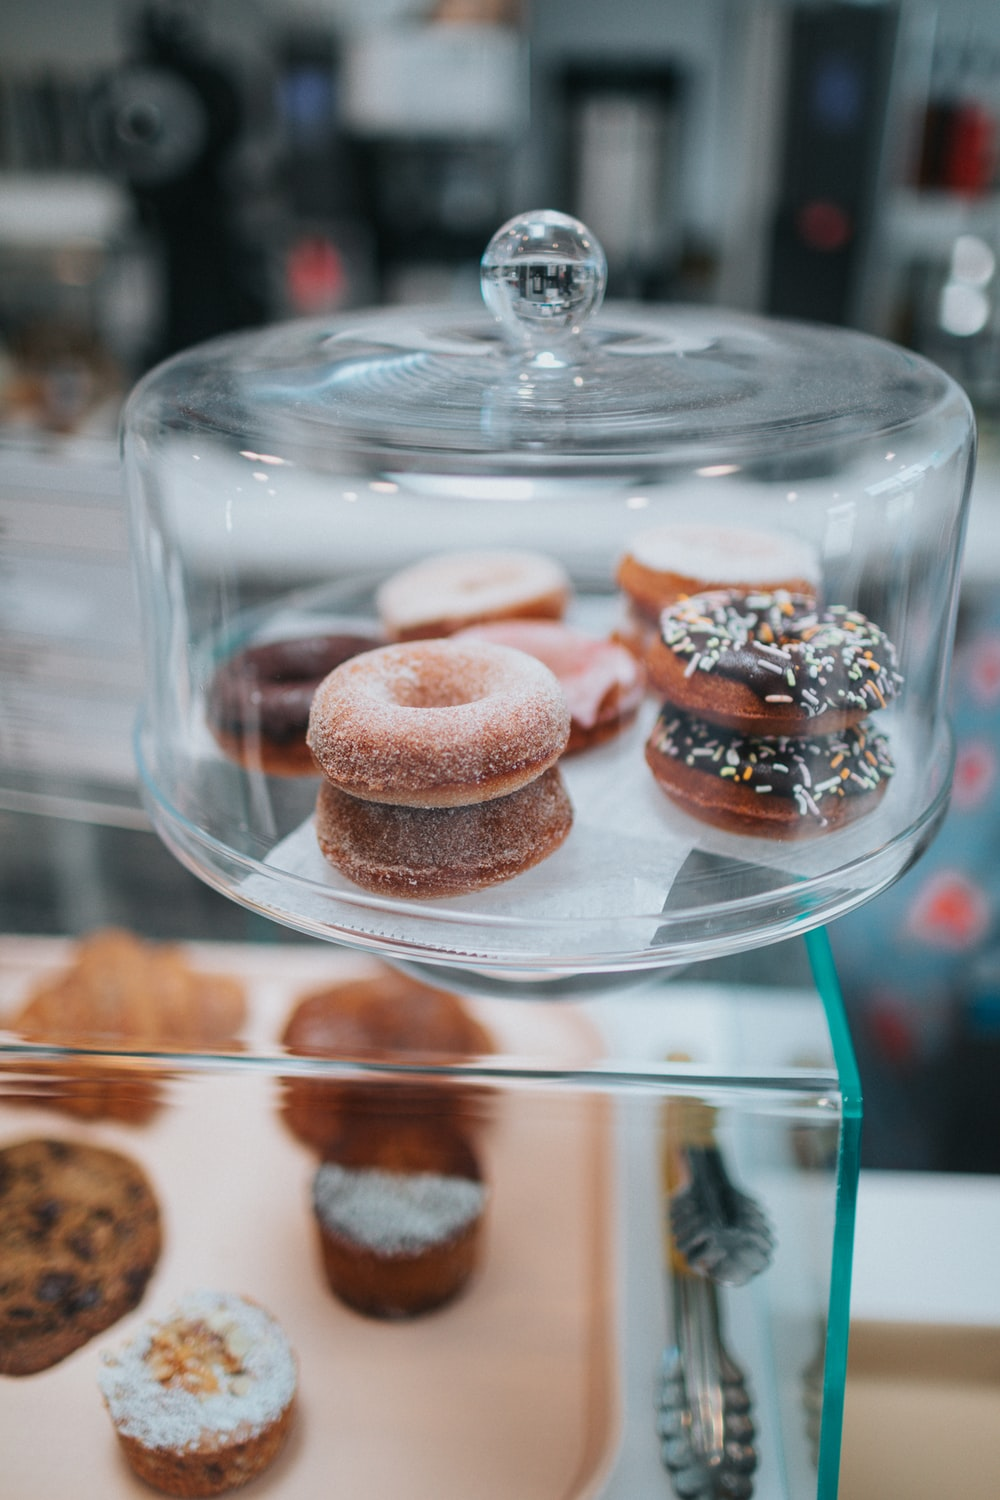 brown and white donuts on clear glass tray